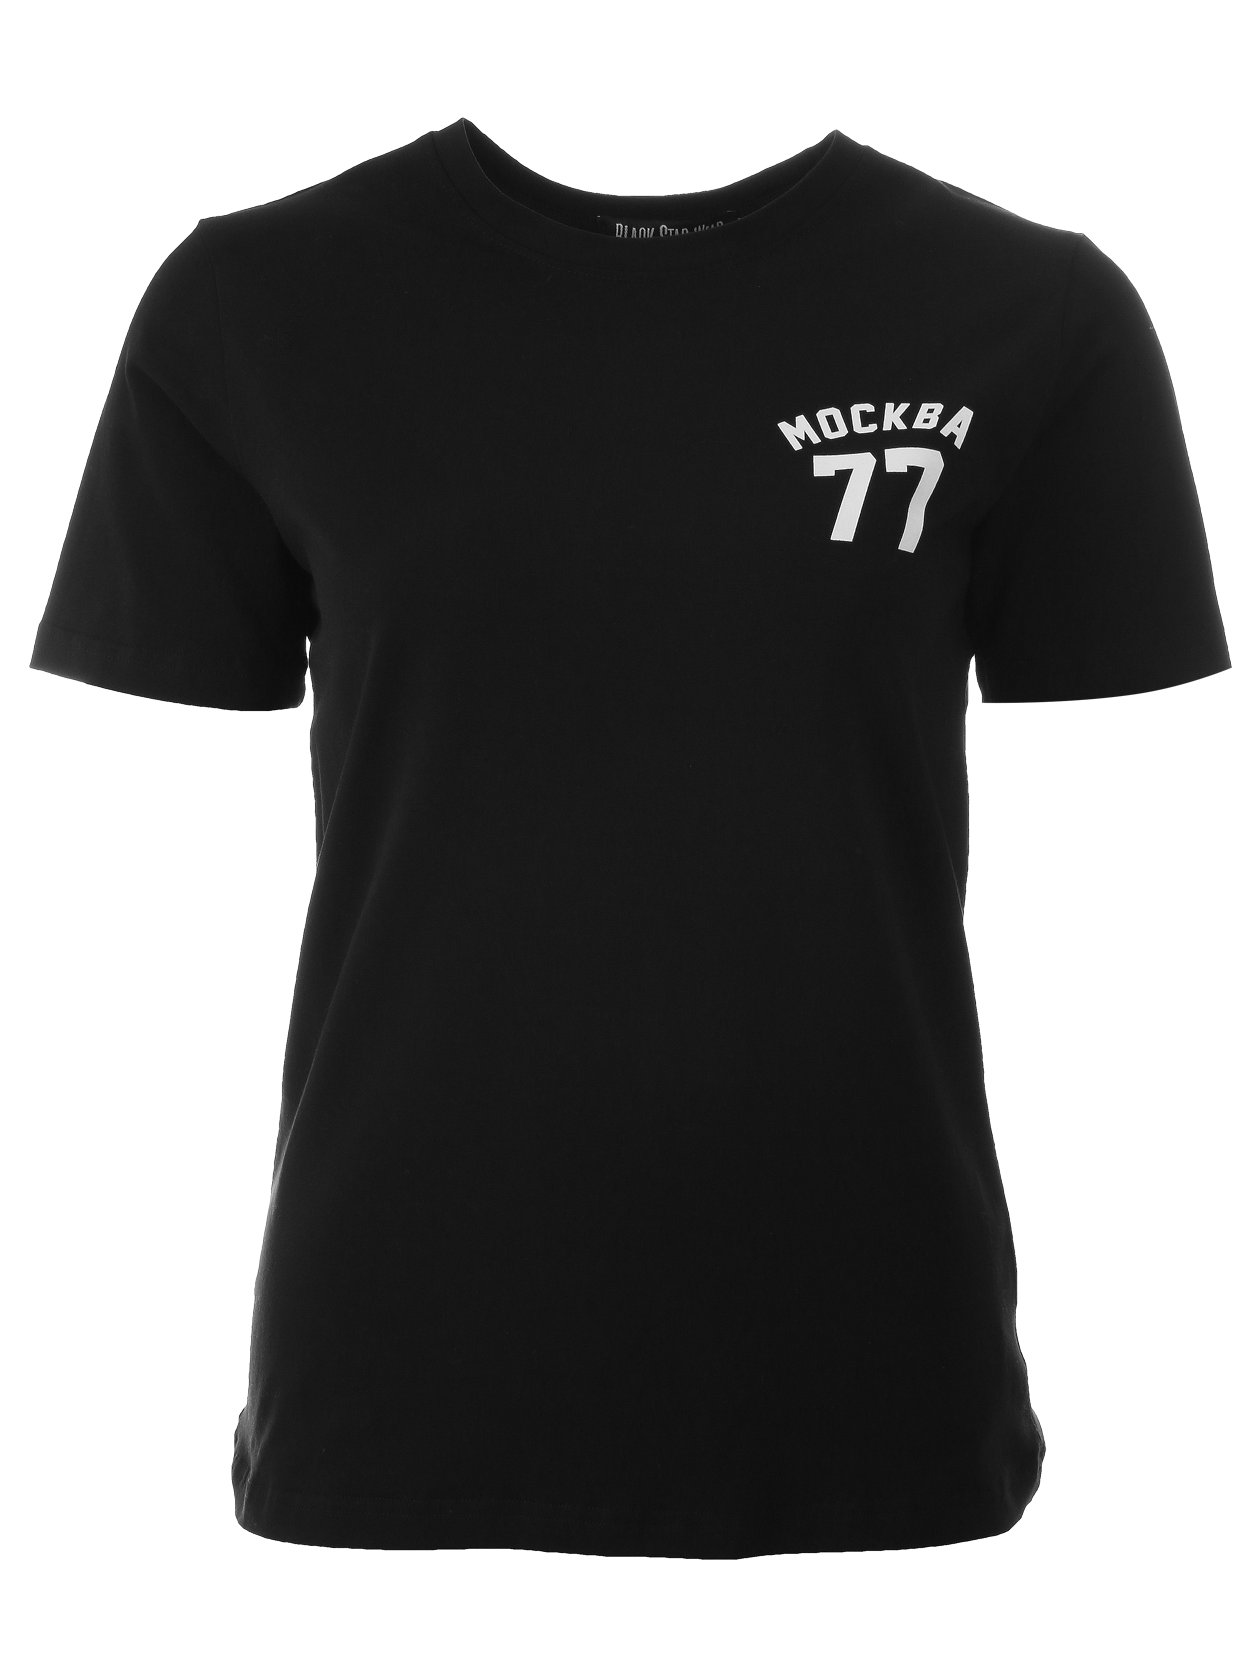 Womens t-shirt Moscow 77